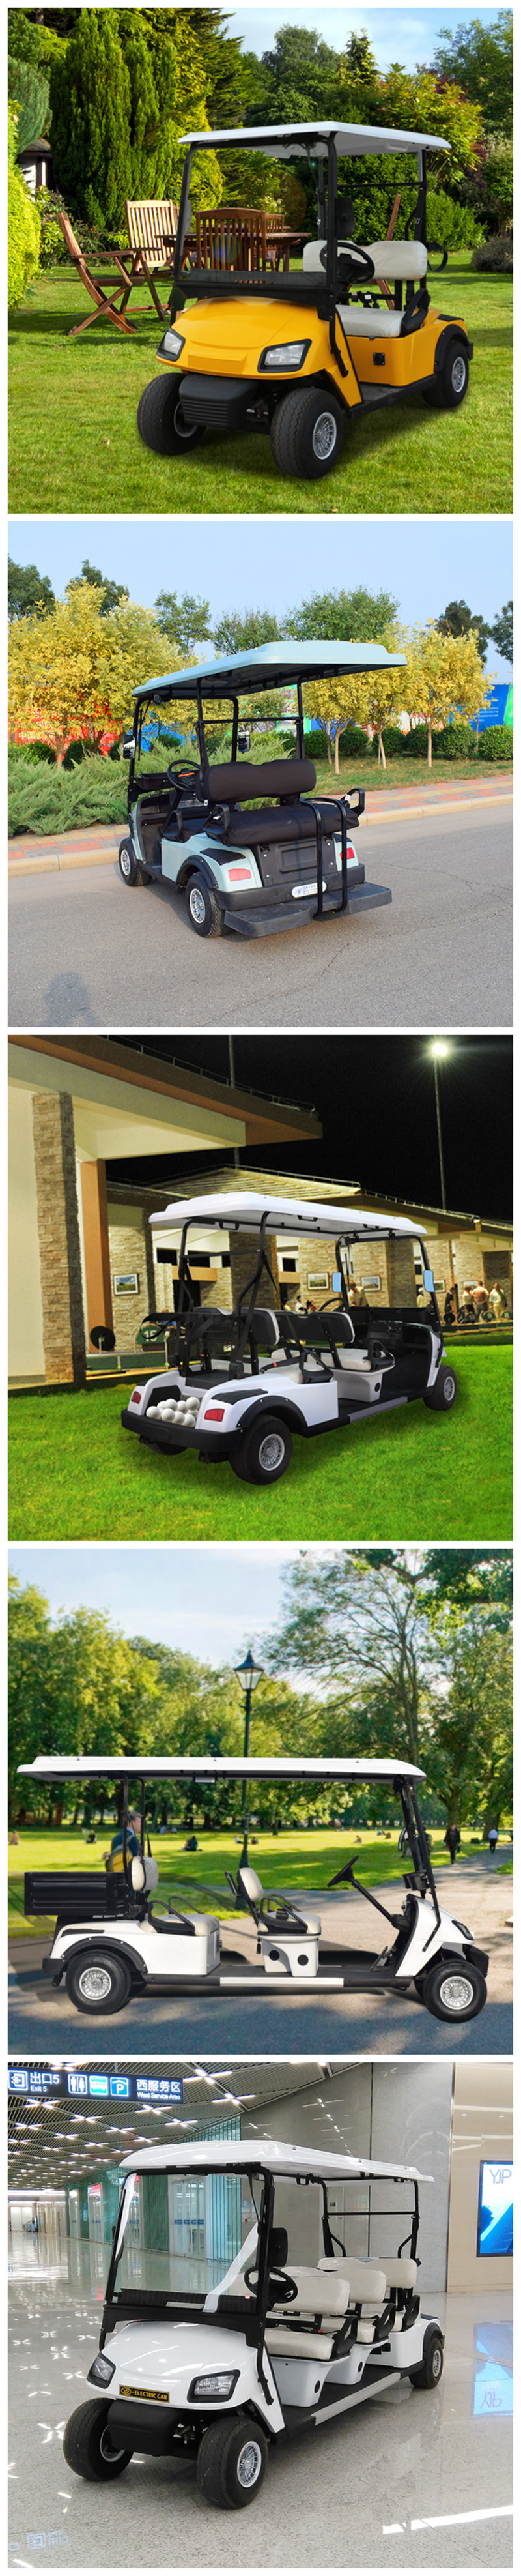 Airport/Seaport/Train Station Widely Used Golf Carts 2/4/6 Seats or with Box